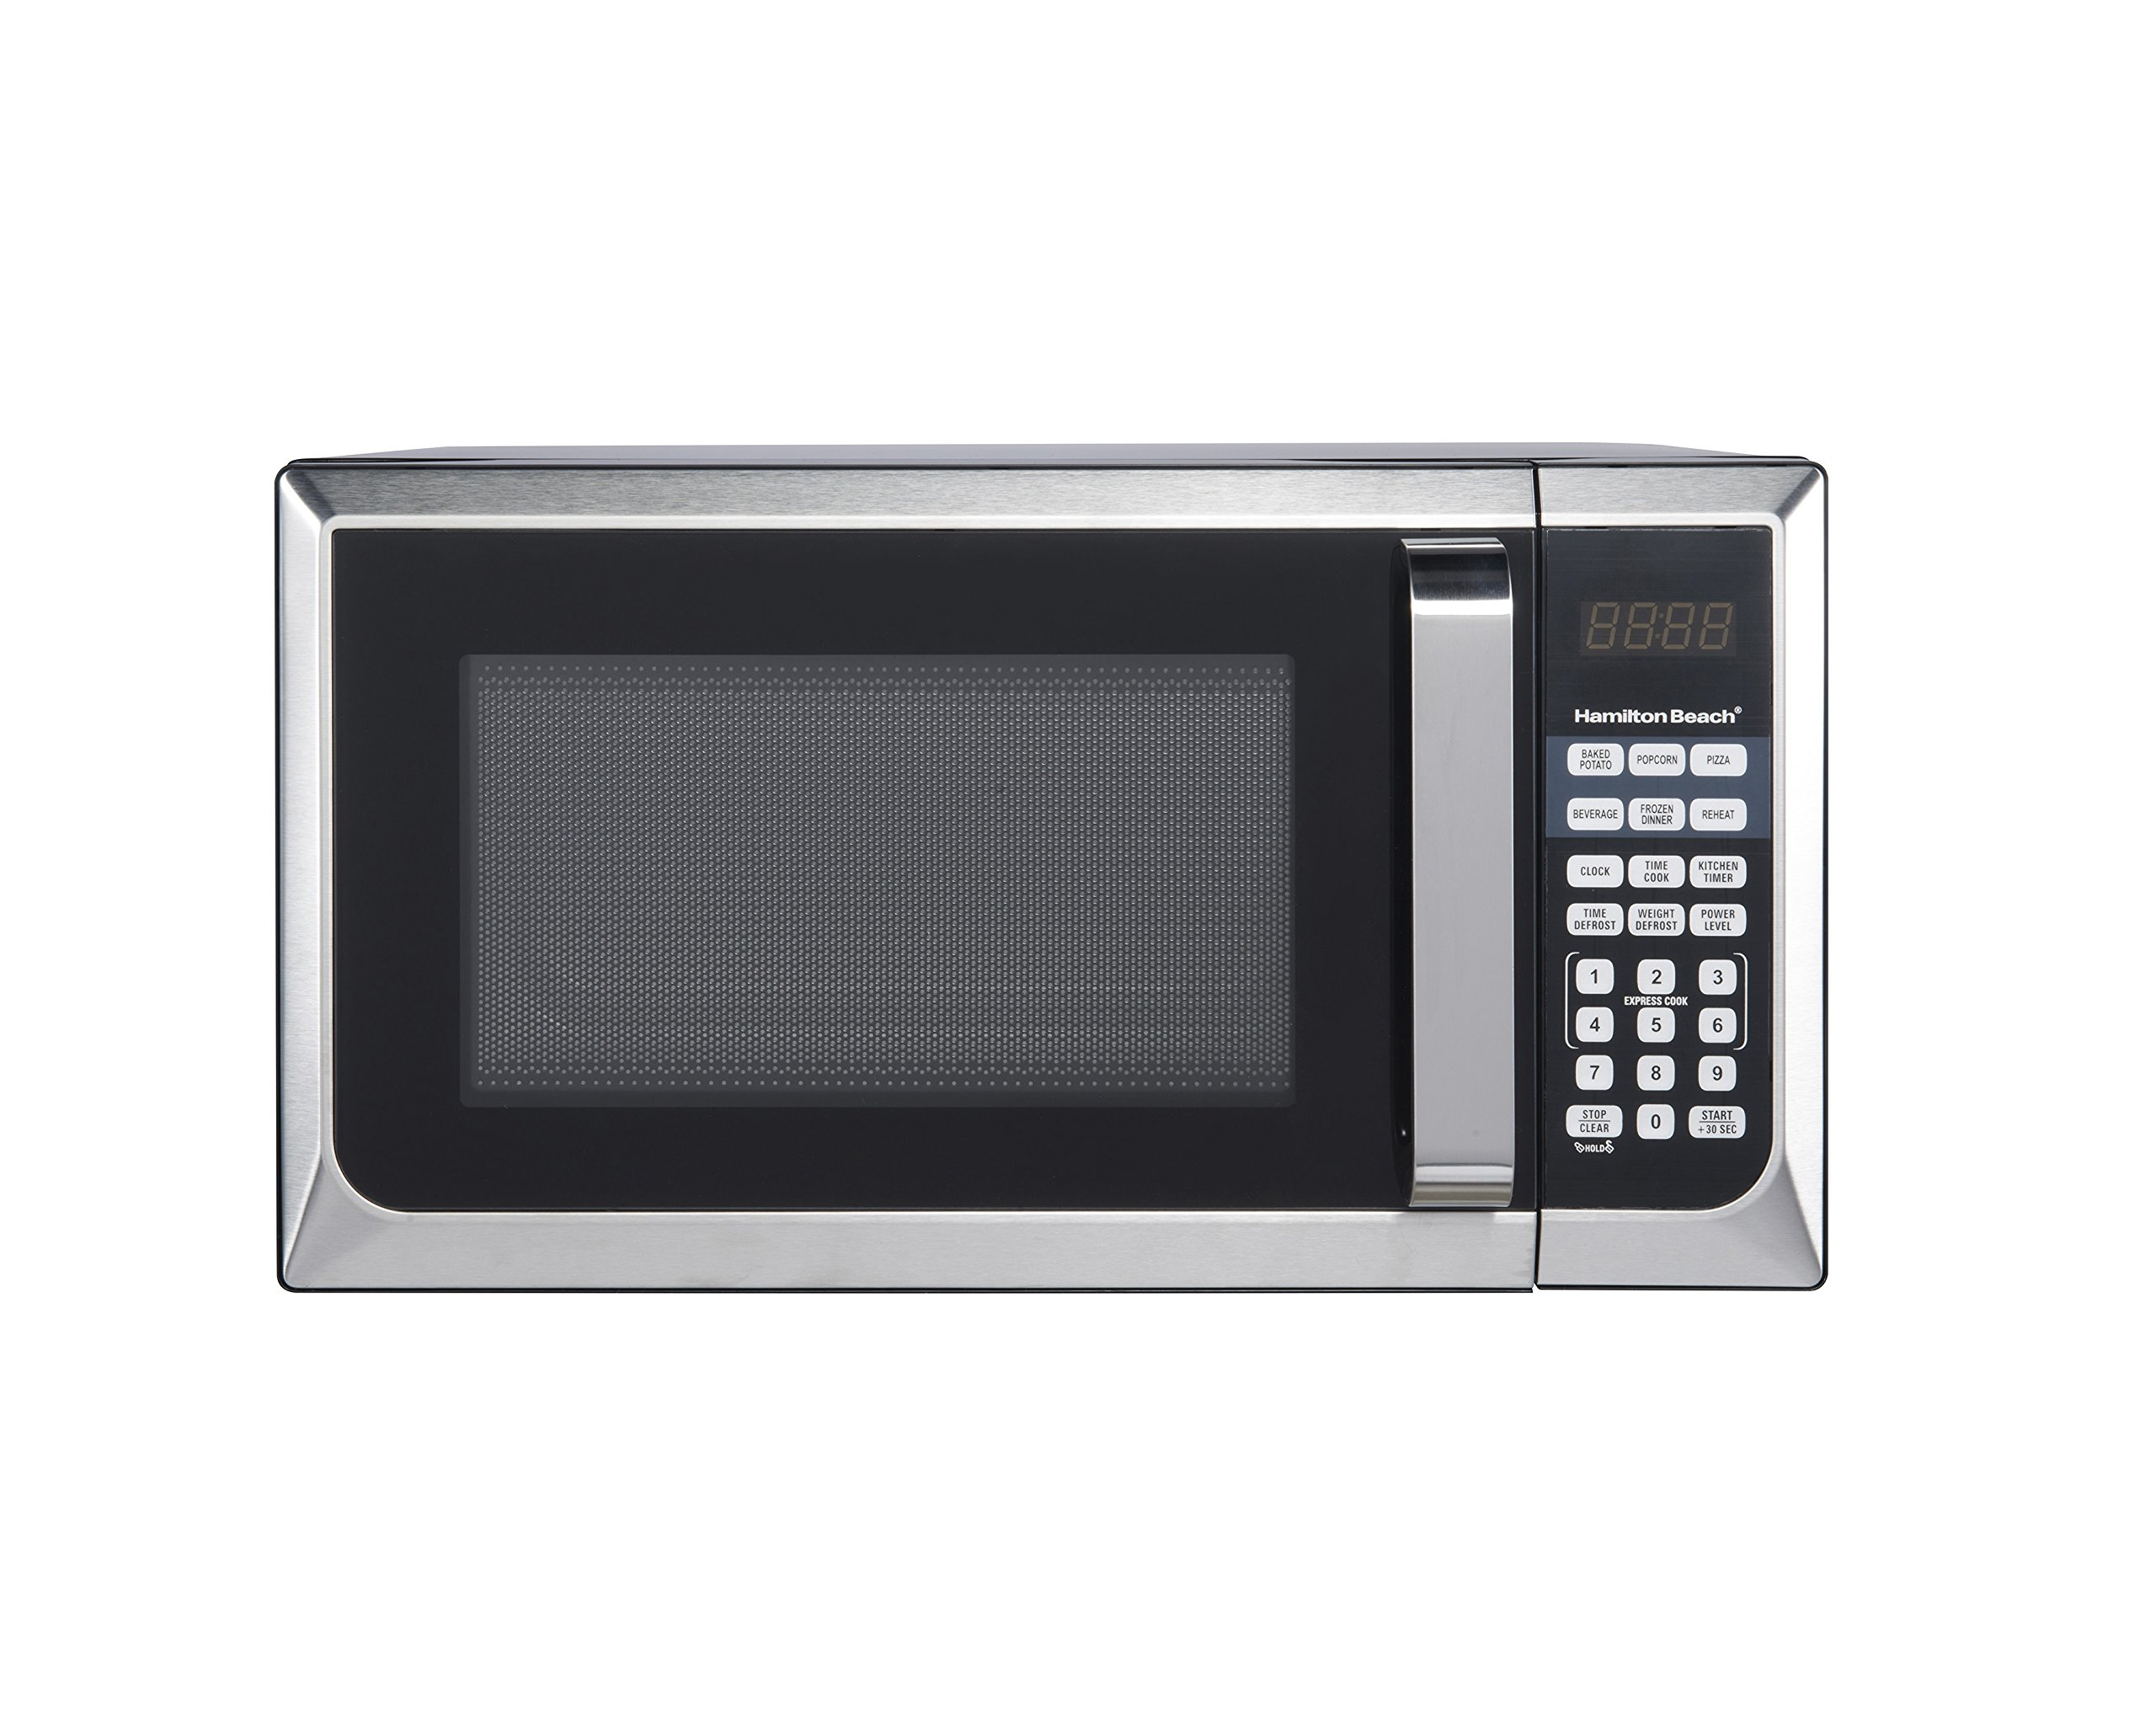 Hamilton Beach 0.9 cu.ft. 900W Microwave Oven, Stainless Steel